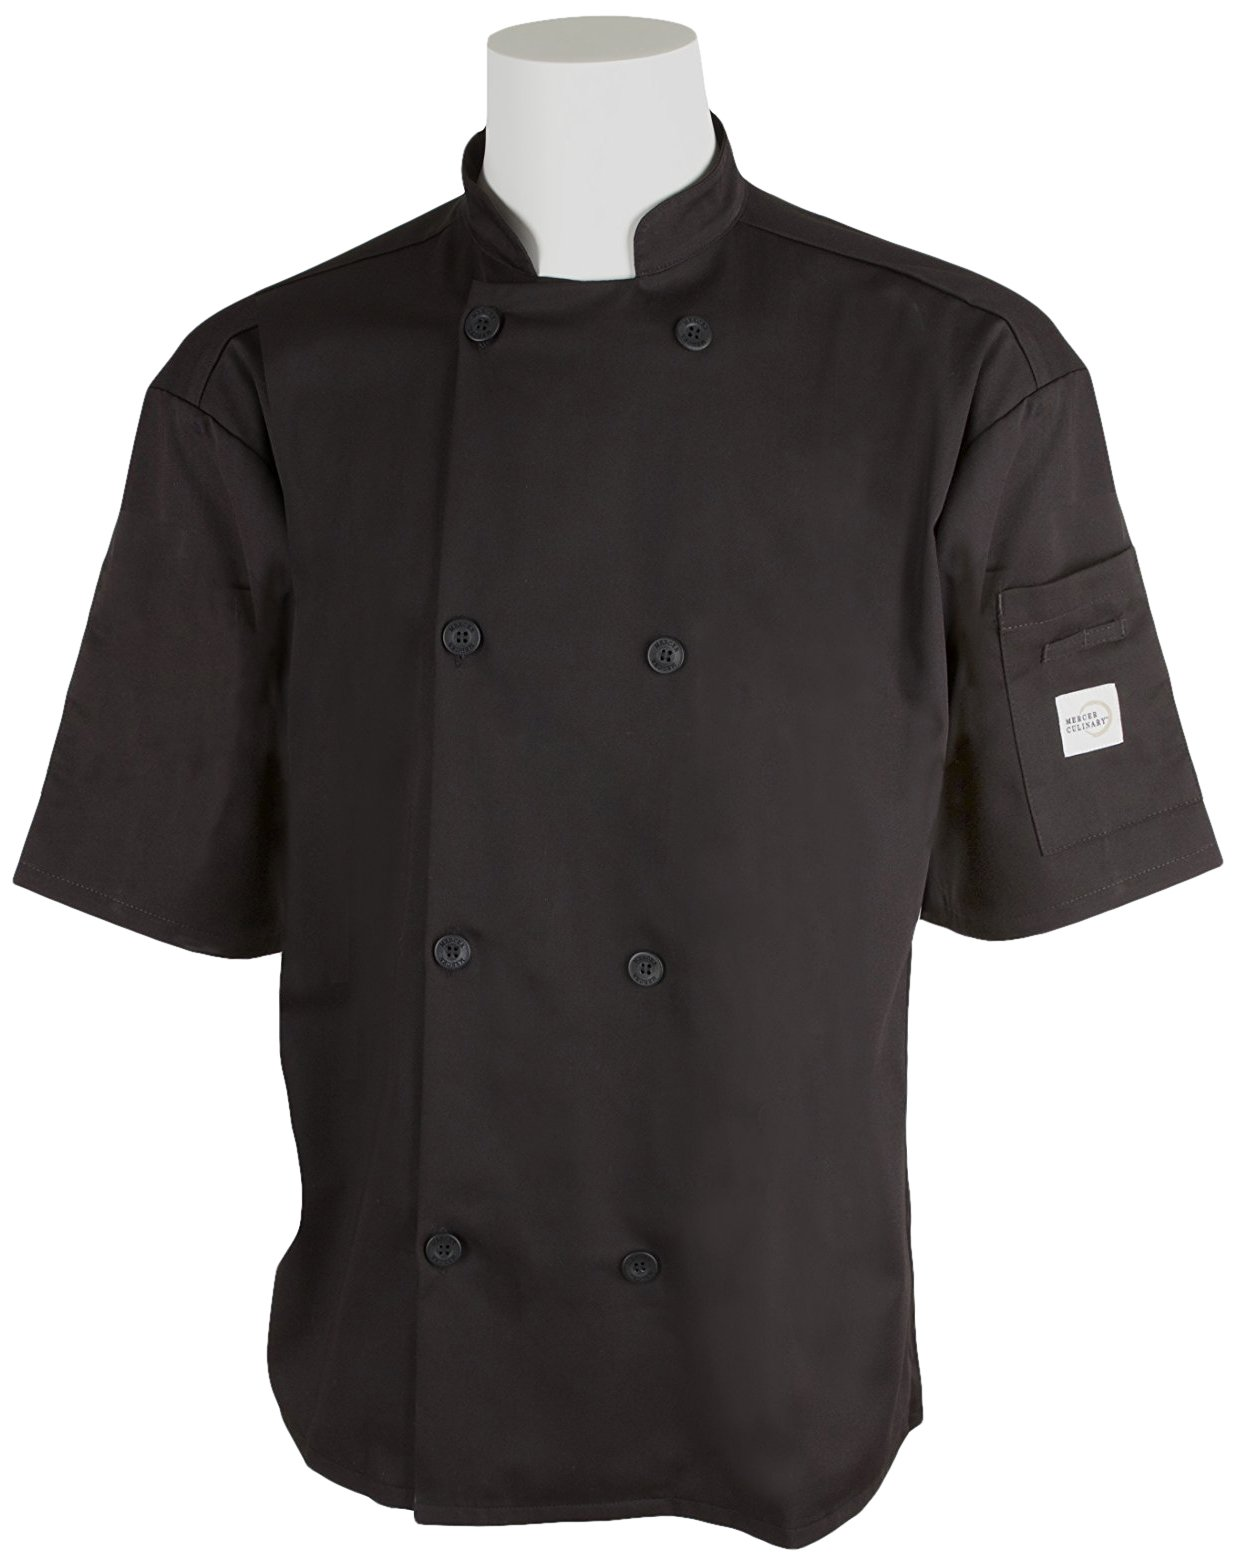 Mercer Culinary M60013BK8X Millennia Men's Short Sleeve Cook Jacket with Traditional Buttons, 8X-Large, Black by Mercer Culinary